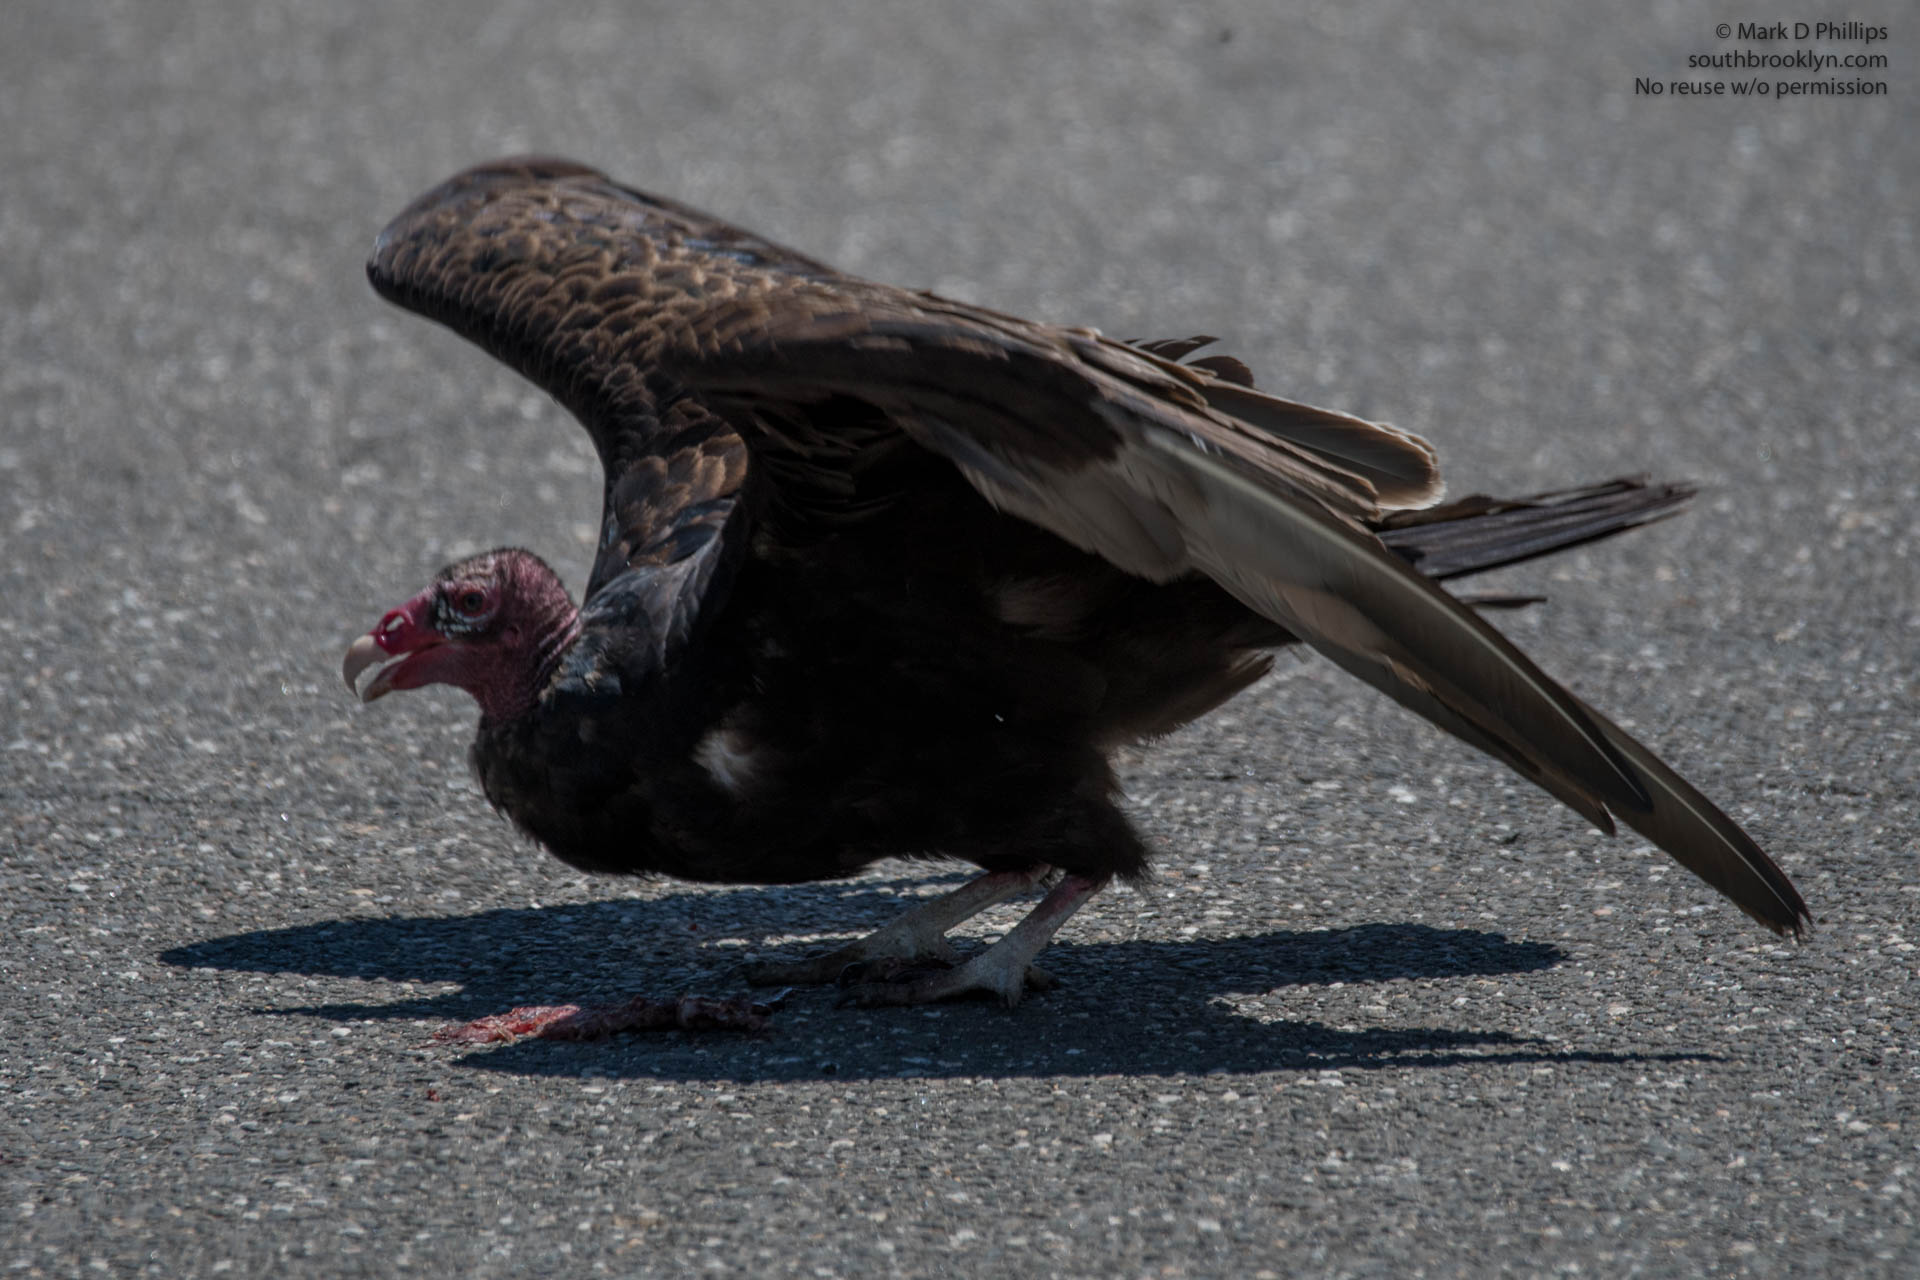 A Turkey Vulture eats from road kill in Springfield, Massachusetts.